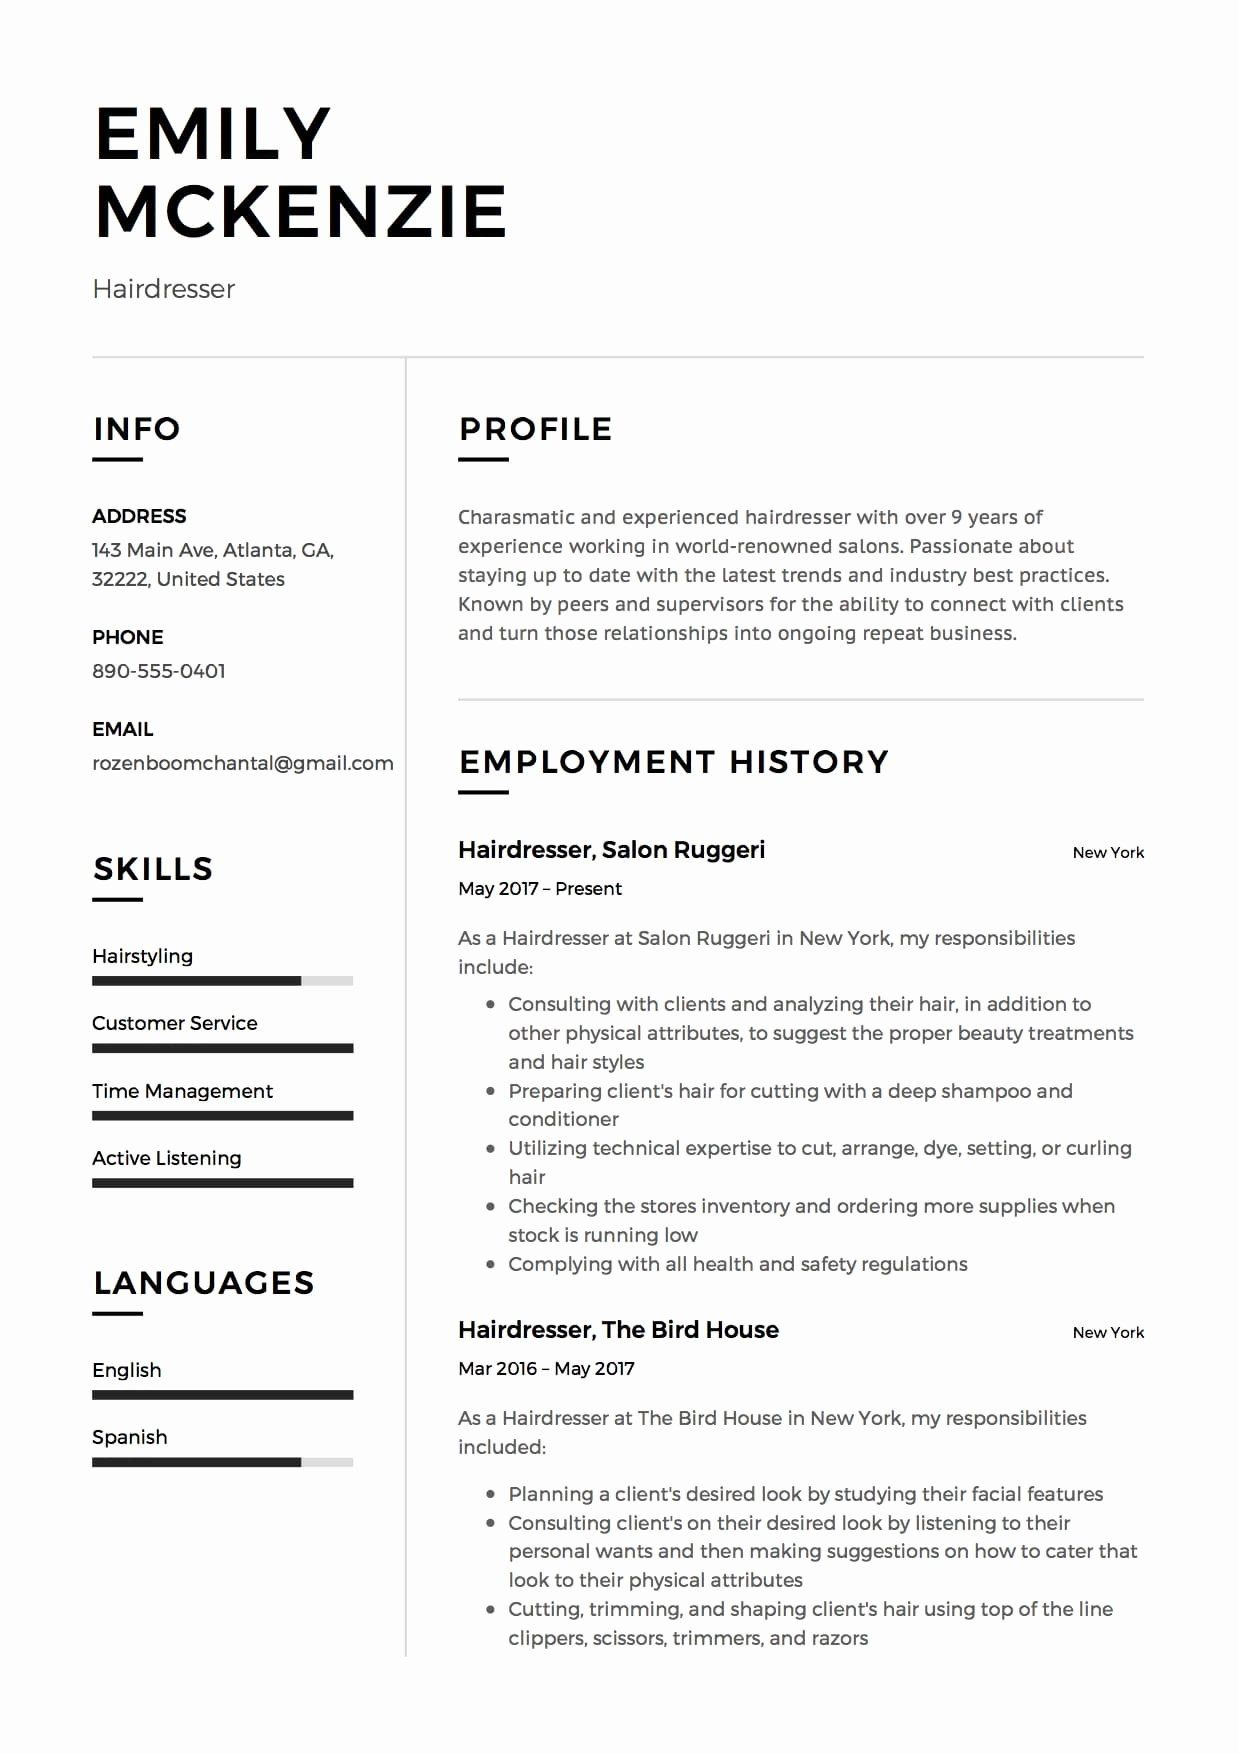 Hairdresser Resume Sample, example, template, cv, creative